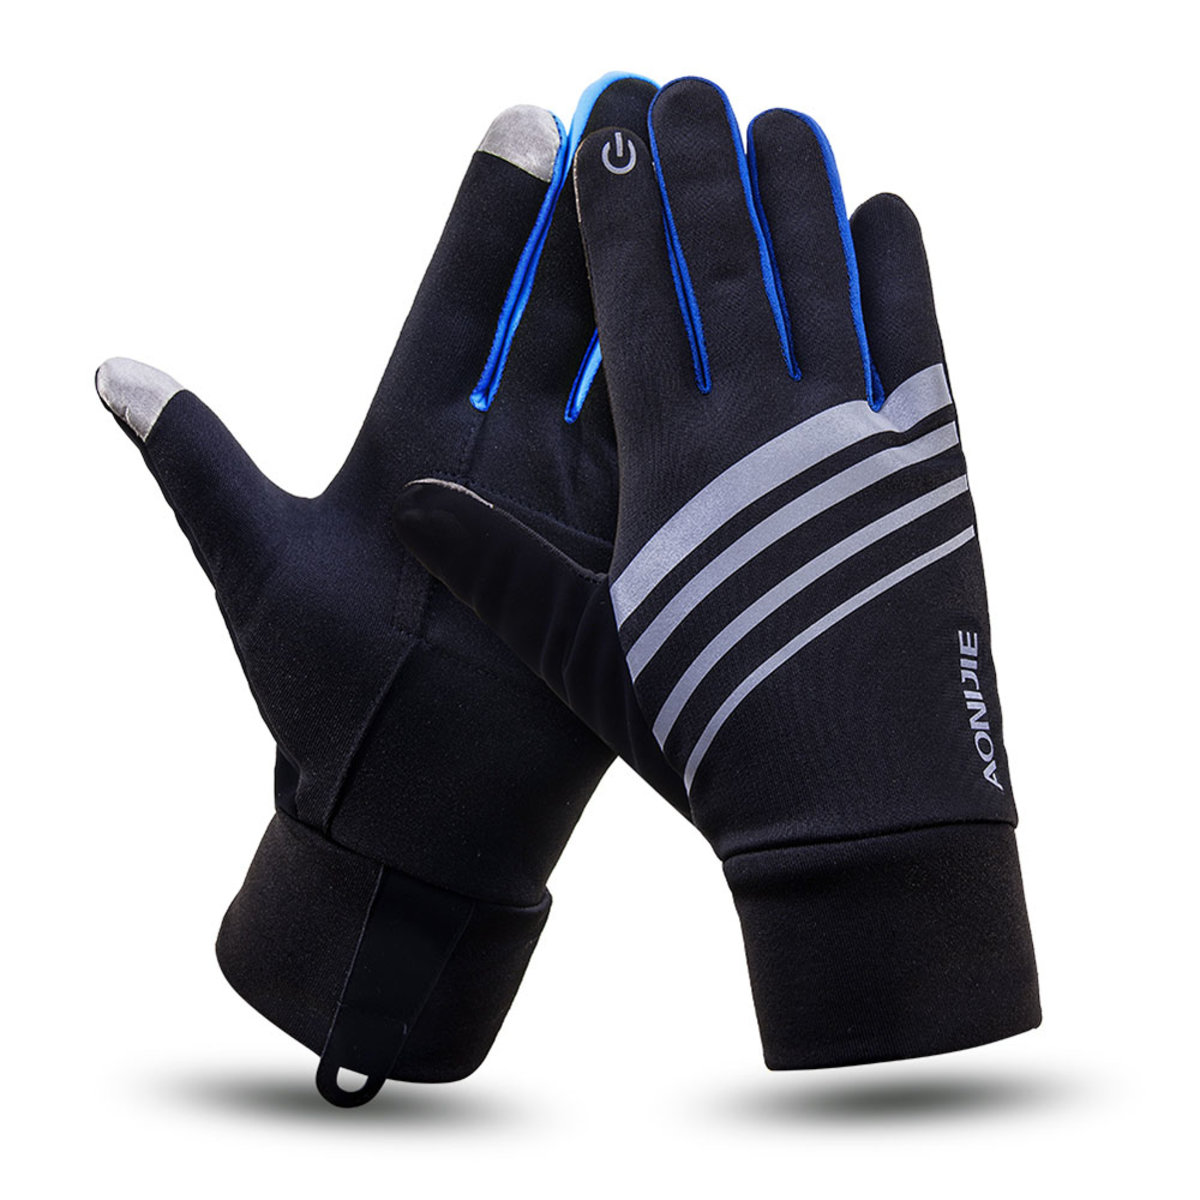 M-51 Winter Warm Windproof Touch Screen Gloves With Key Pocket For Outdoor Sports Running Hiking Cycling – Blue